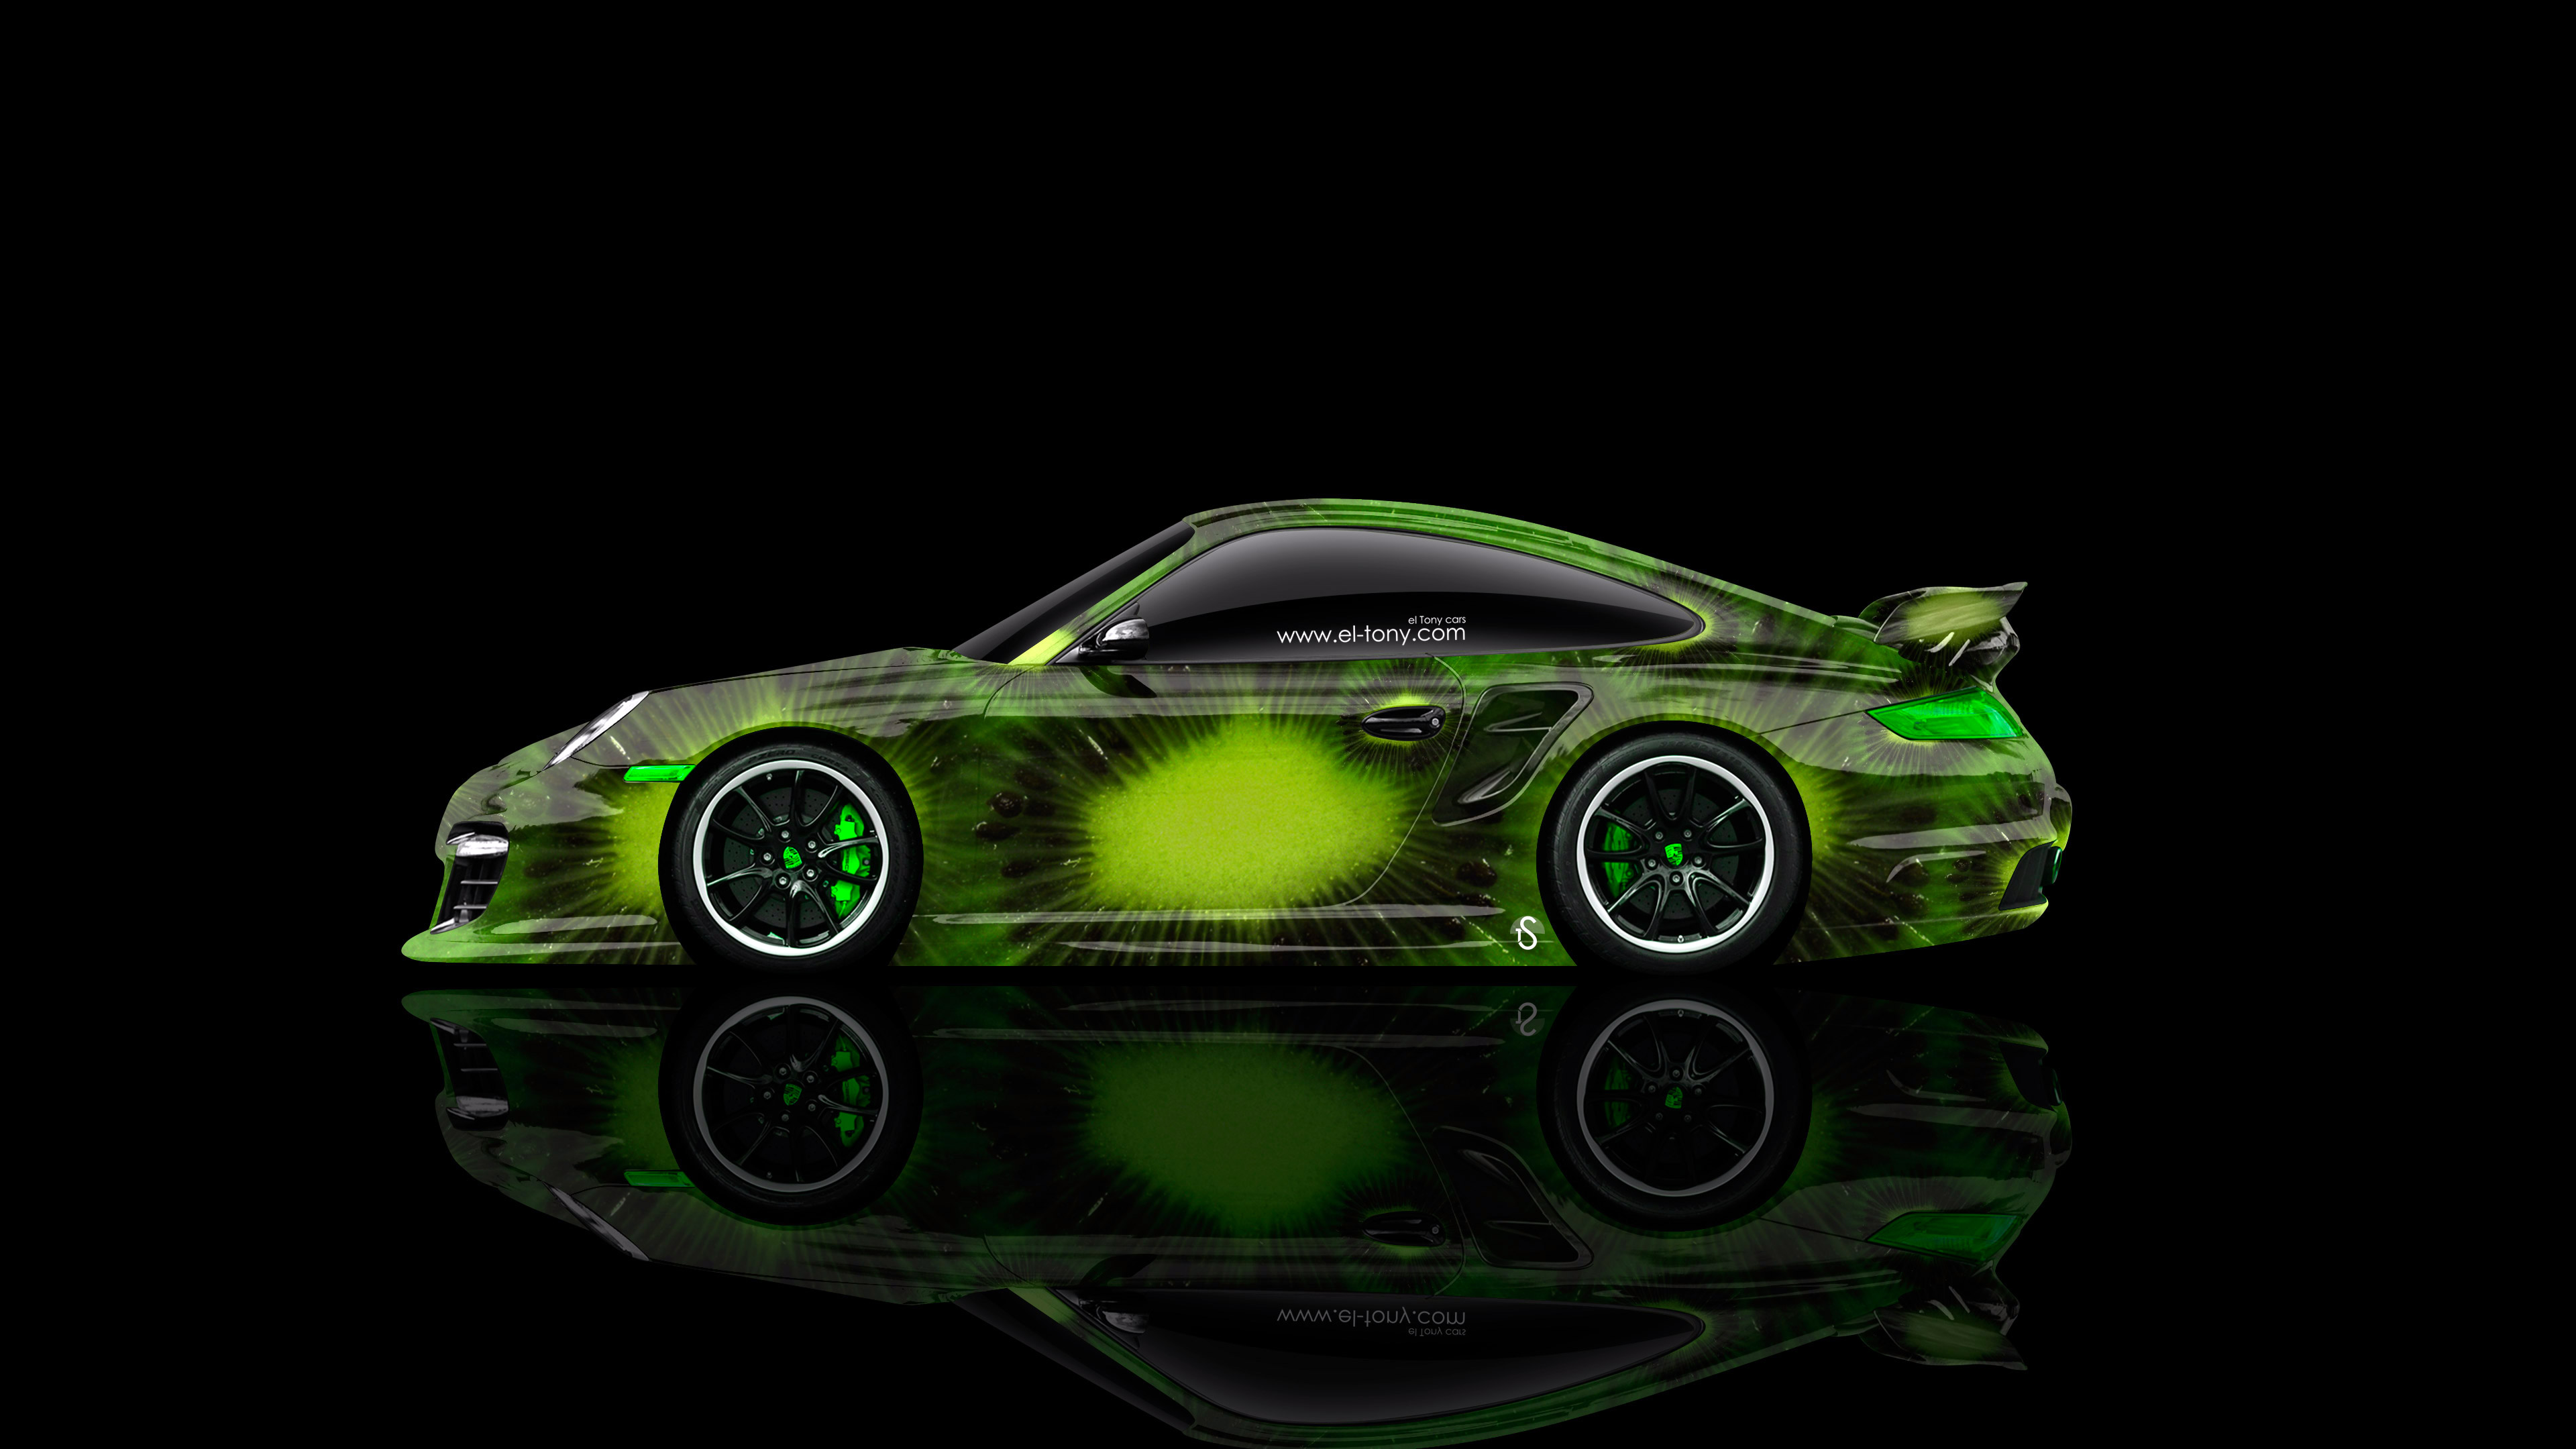 Porsche-911-GT2-Side-Kiwi-Aerography-Car-2014-Fruit-Art-Green-Colors-4K-Wallpapers-design-by-Tony-Kokhan-[www.el-tony.com]